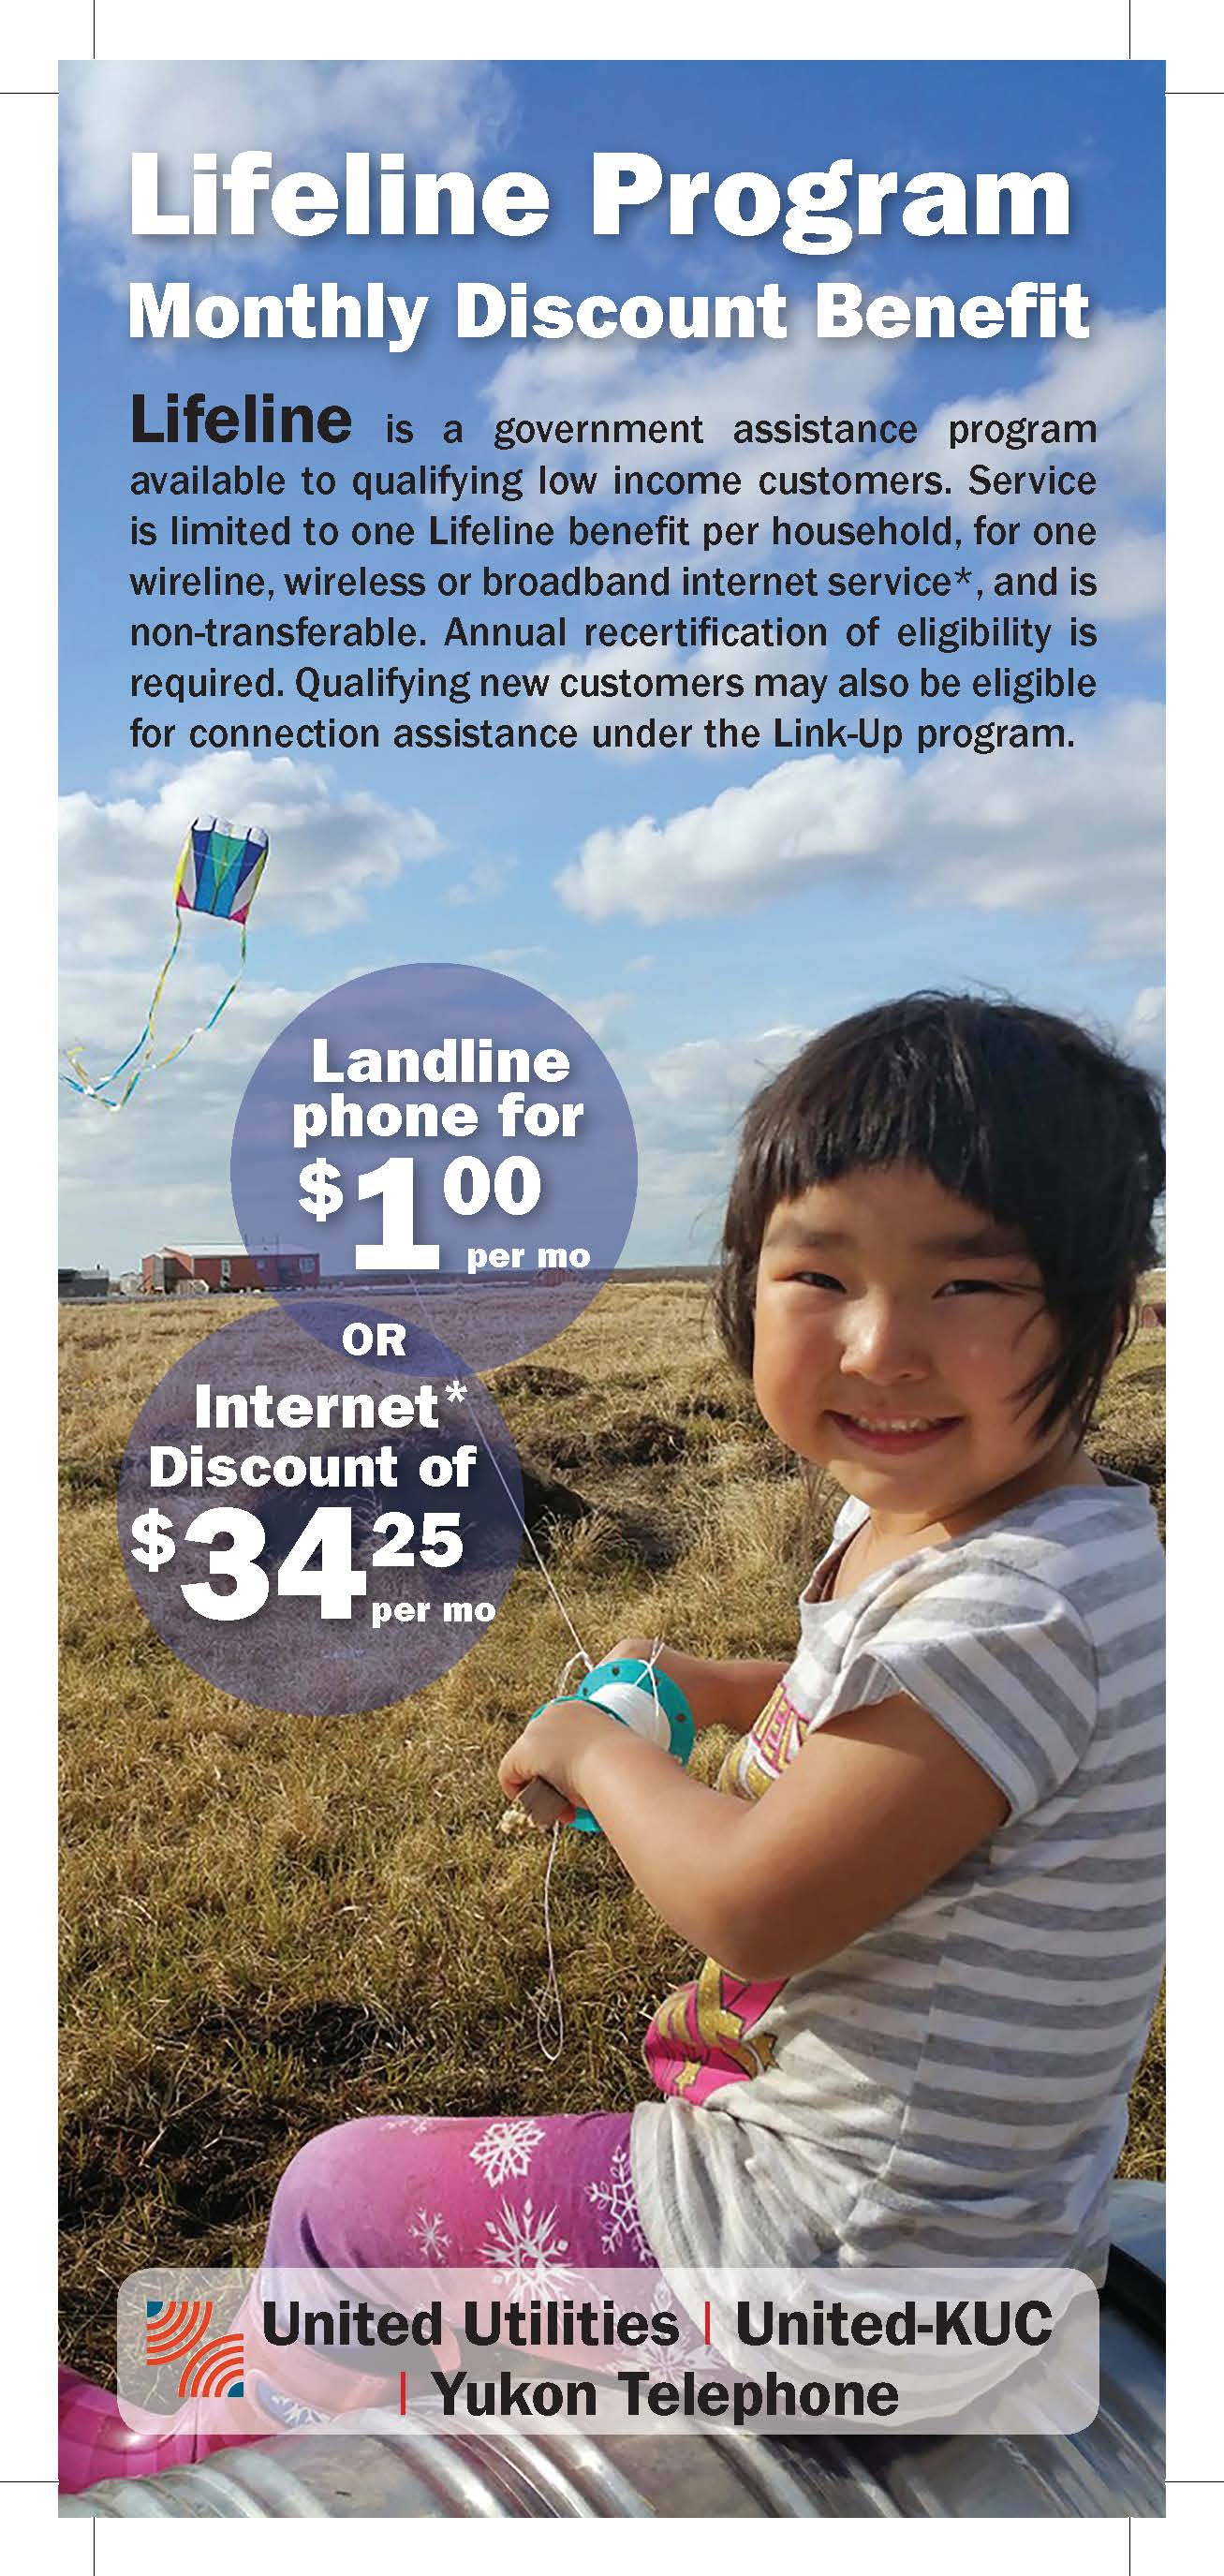 What are the benefits of the federal Lifeline assistance program?